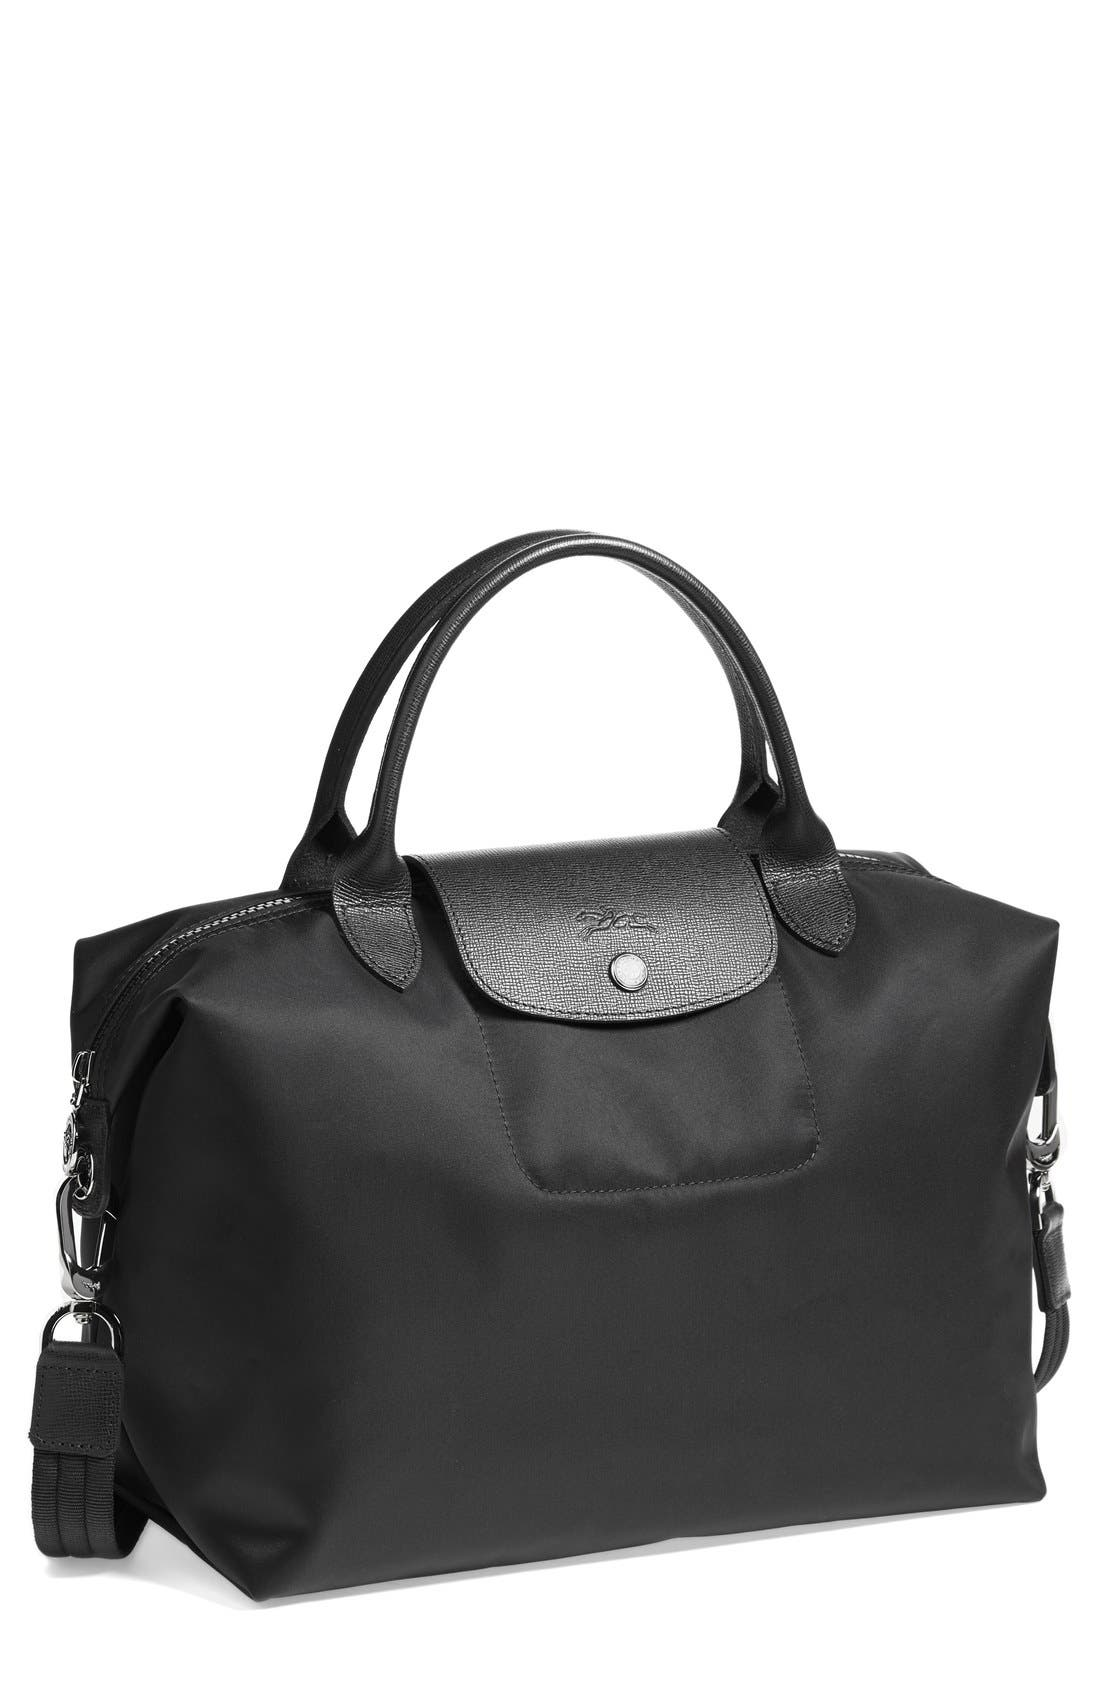 88bcad0c7 Longchamp 'Medium Le Pliage Neo' Nylon Top Handle Tote - Black ...